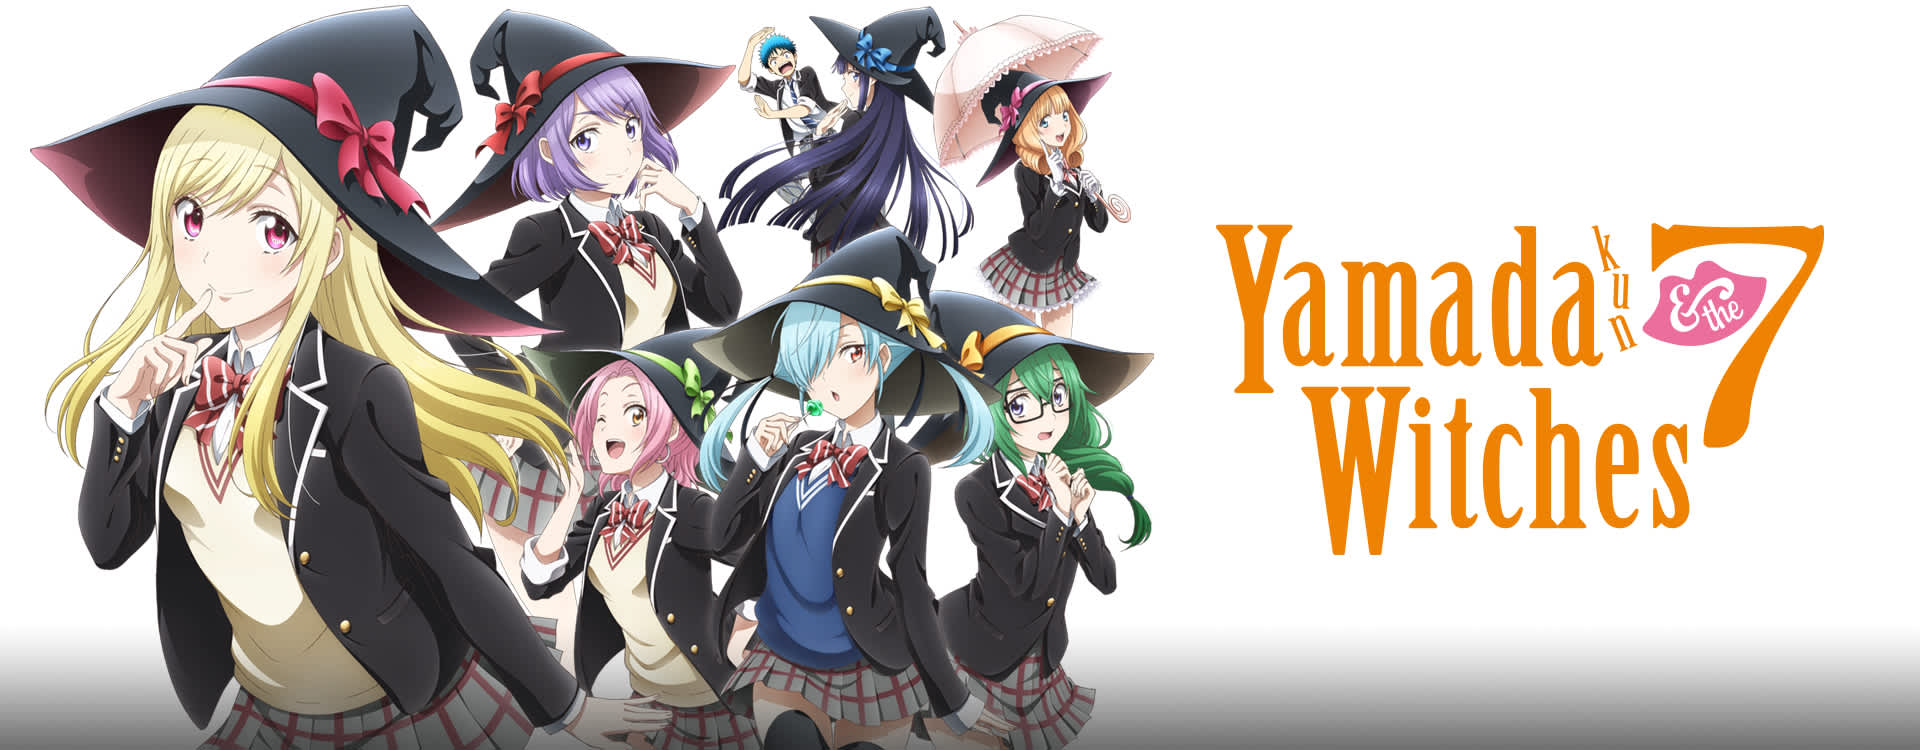 Yamada-kun and the seven witches episode 1 english dub